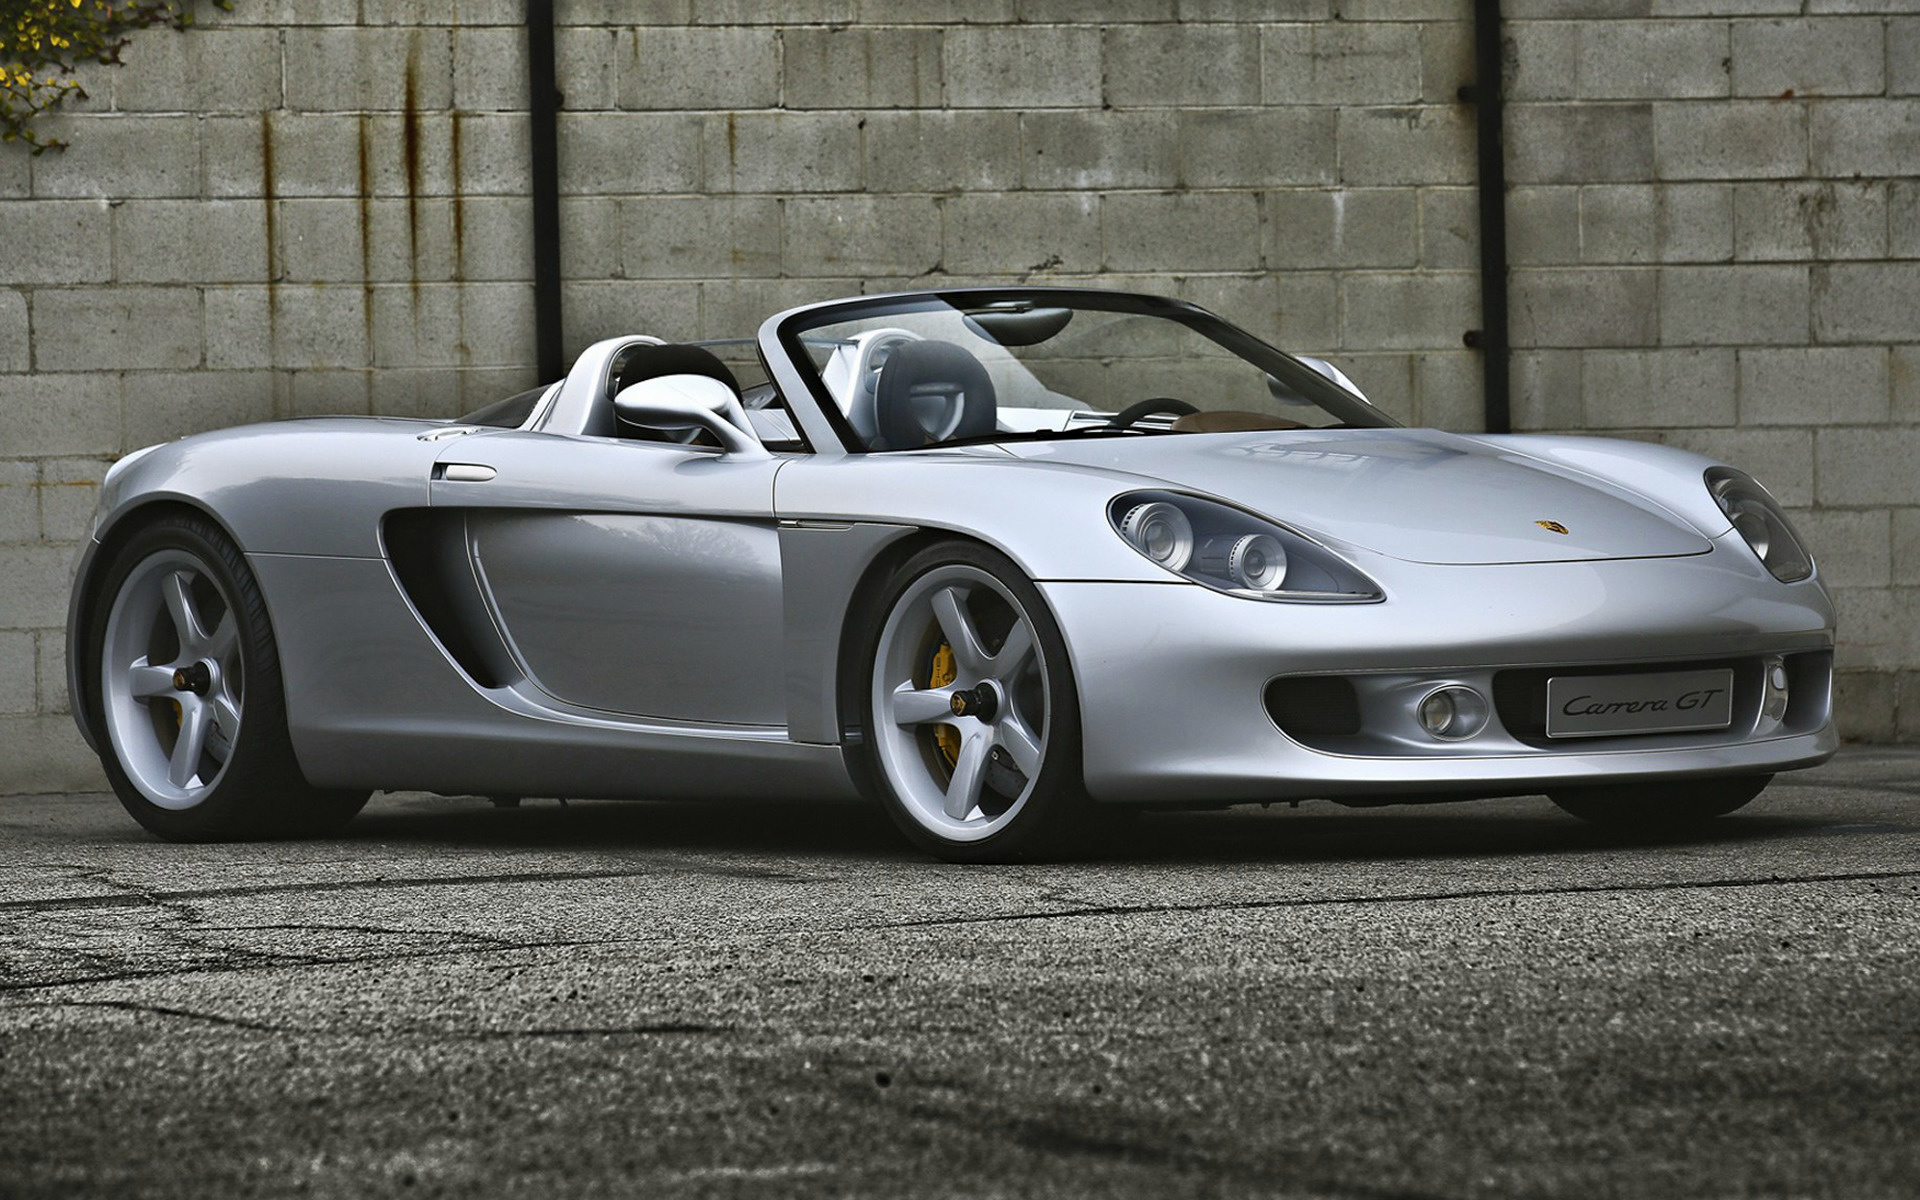 2000 Porsche Carrera Gt Concept Wallpapers And Hd Images